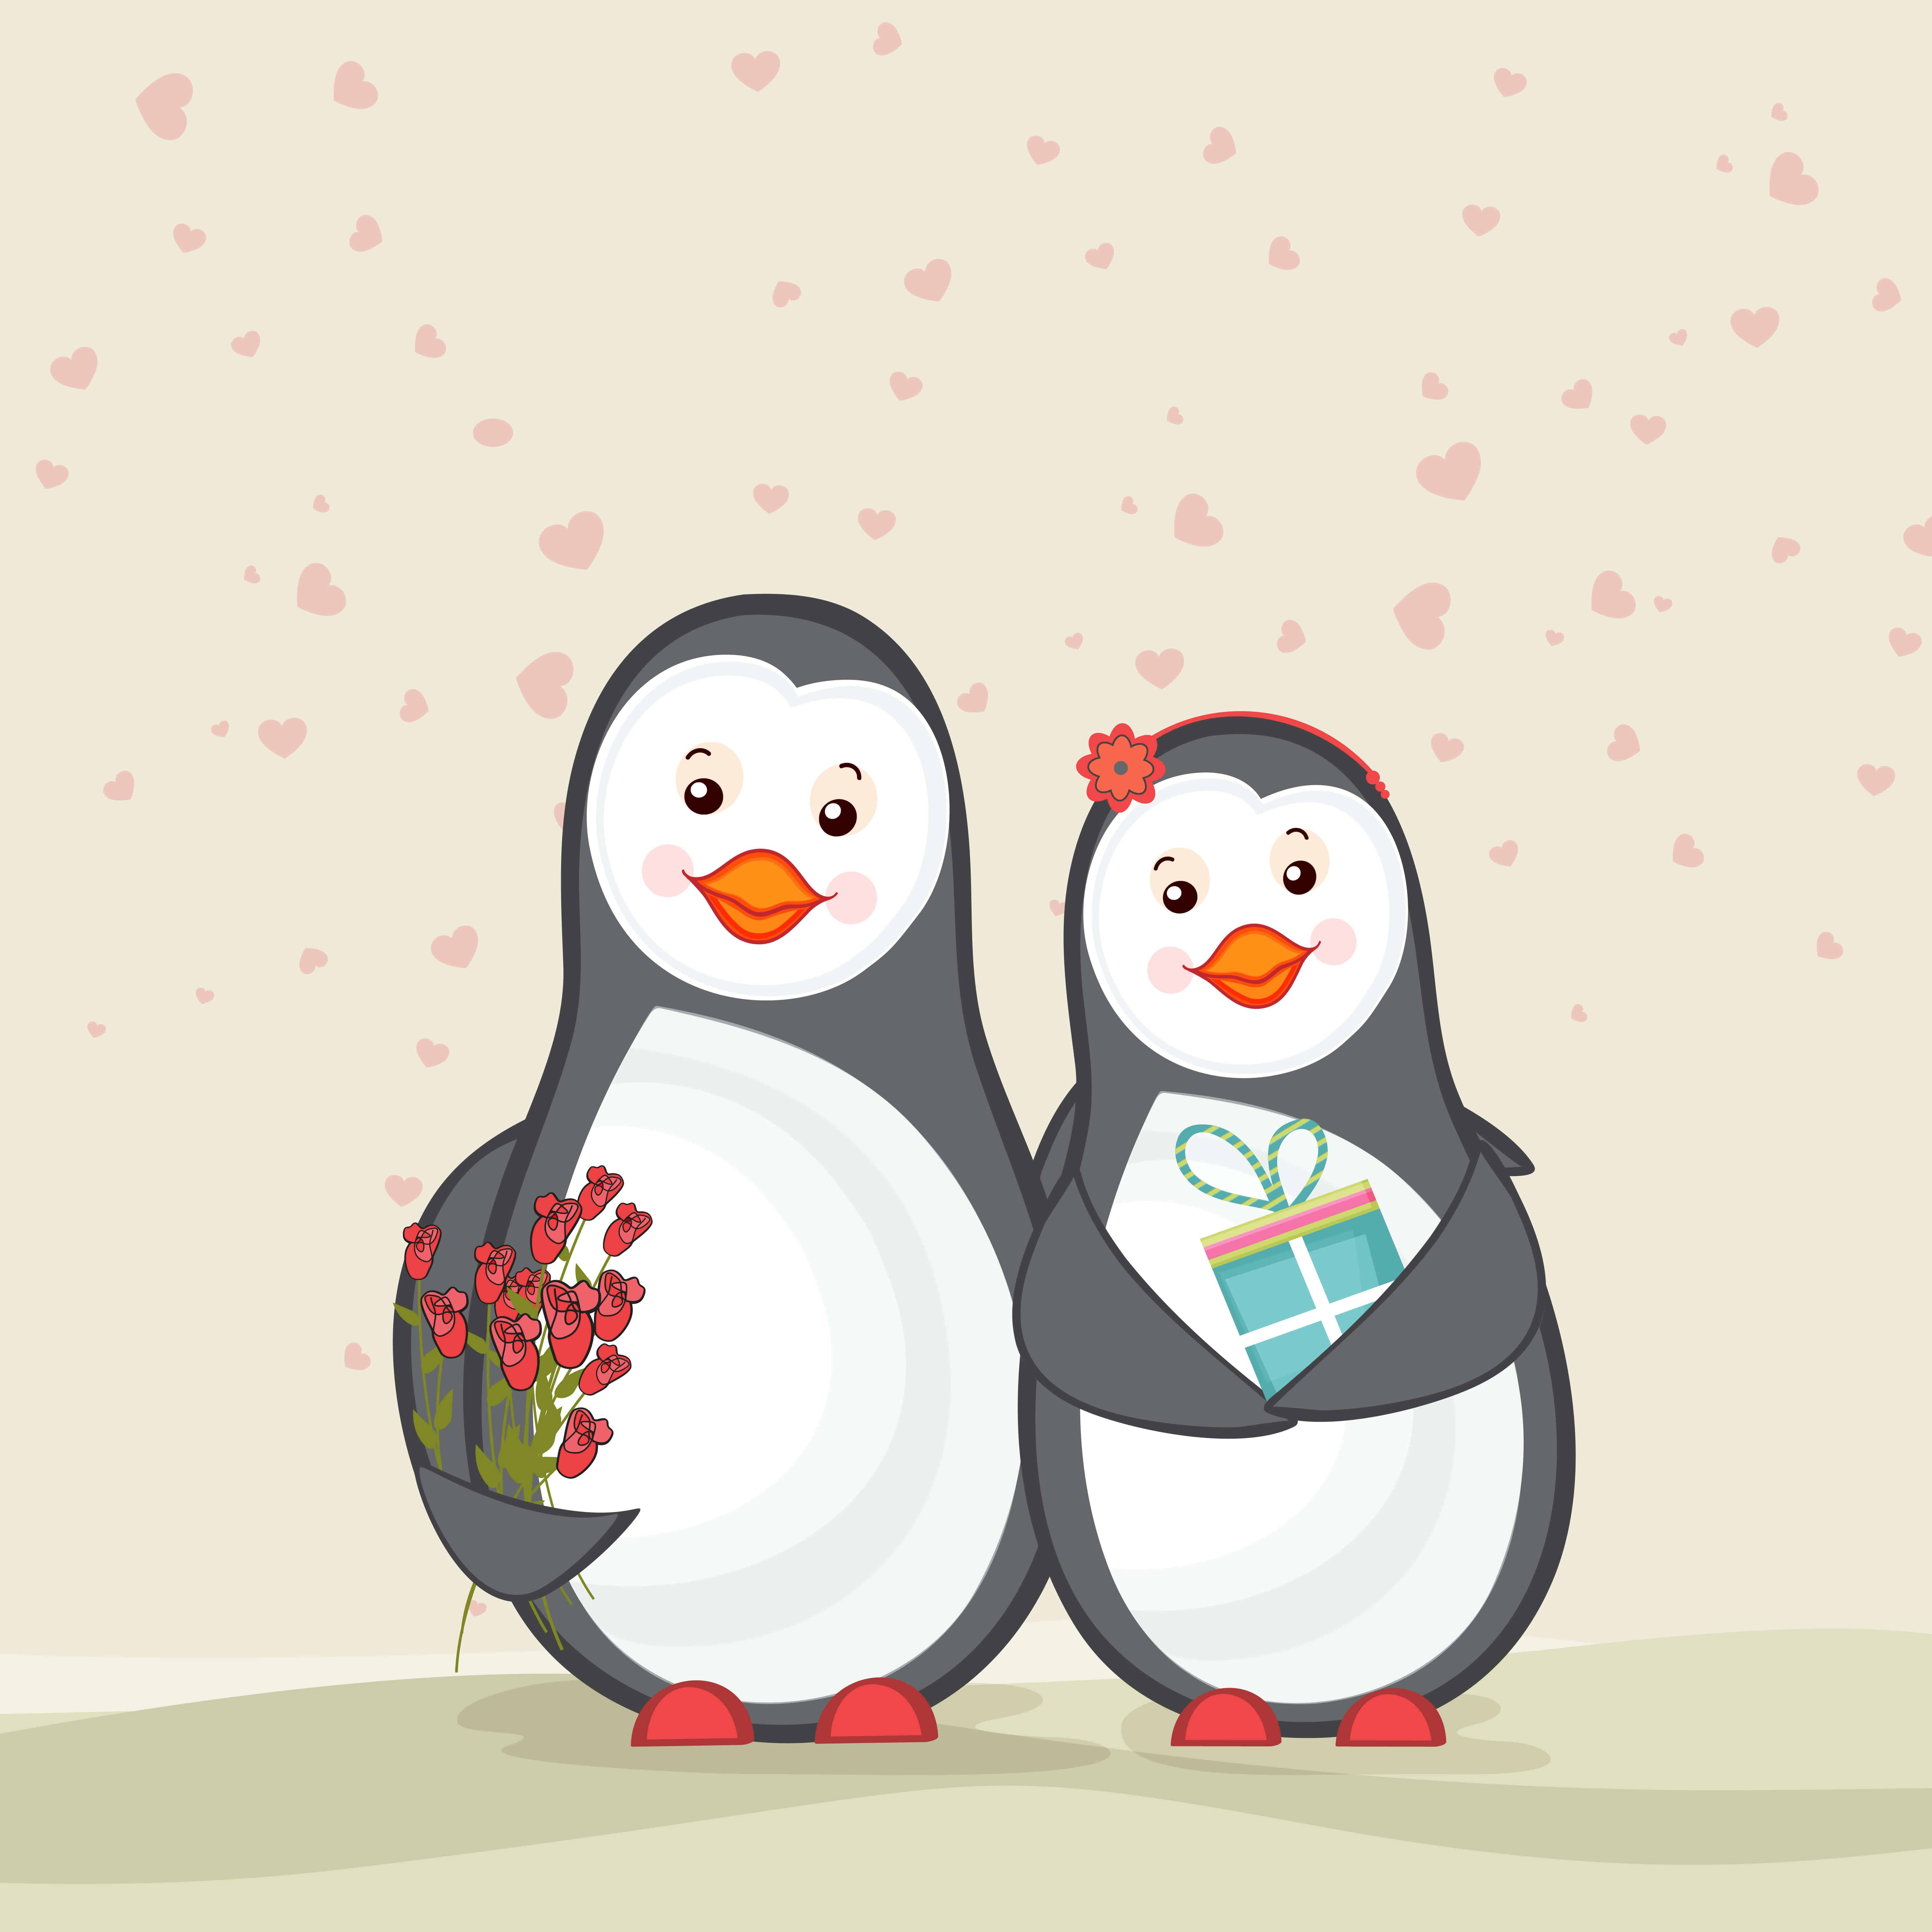 2 animated penguins are standing next to each other, the female penguin is holding a gift